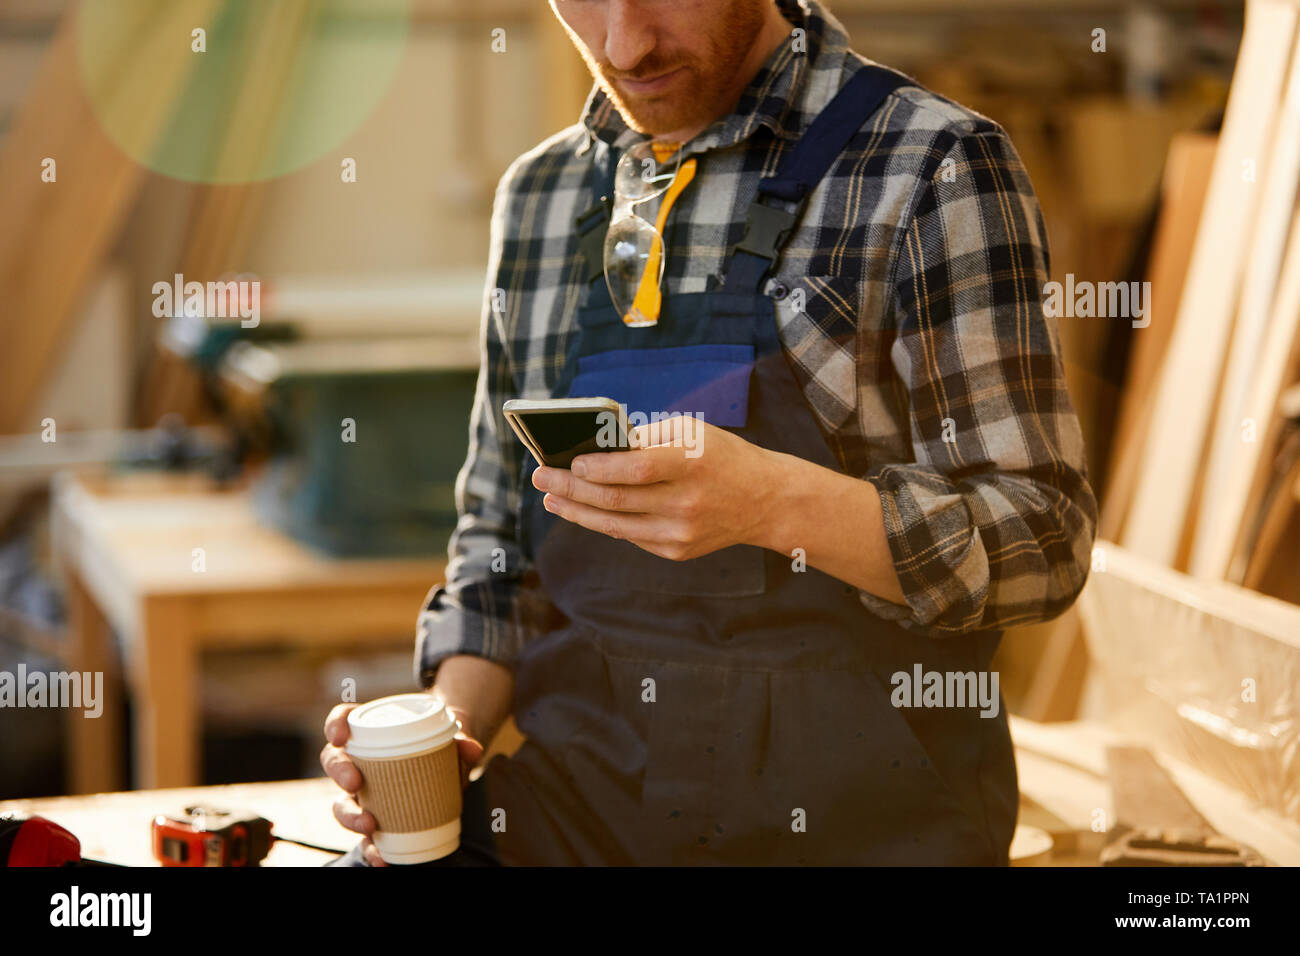 Mid section portrait of modern carpenter using smartphone during coffee break in joinery, copy space - Stock Image